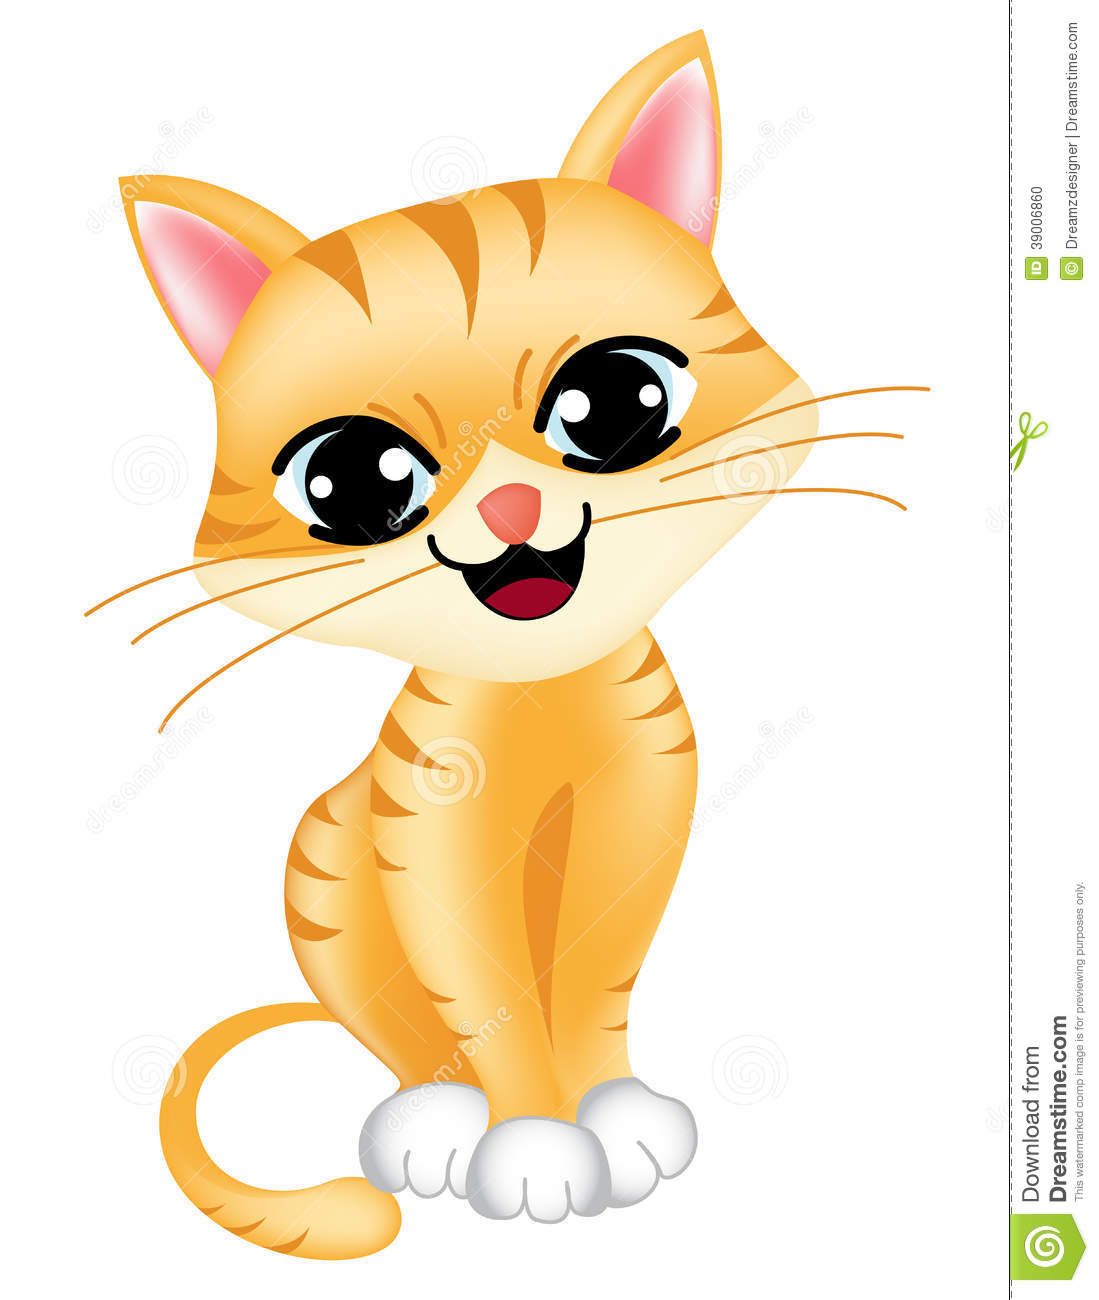 cute cat stock vector illustration of fuzzy brown adorable 39006860 rh dreamstime com cute cat clipart free cute cat clipart png